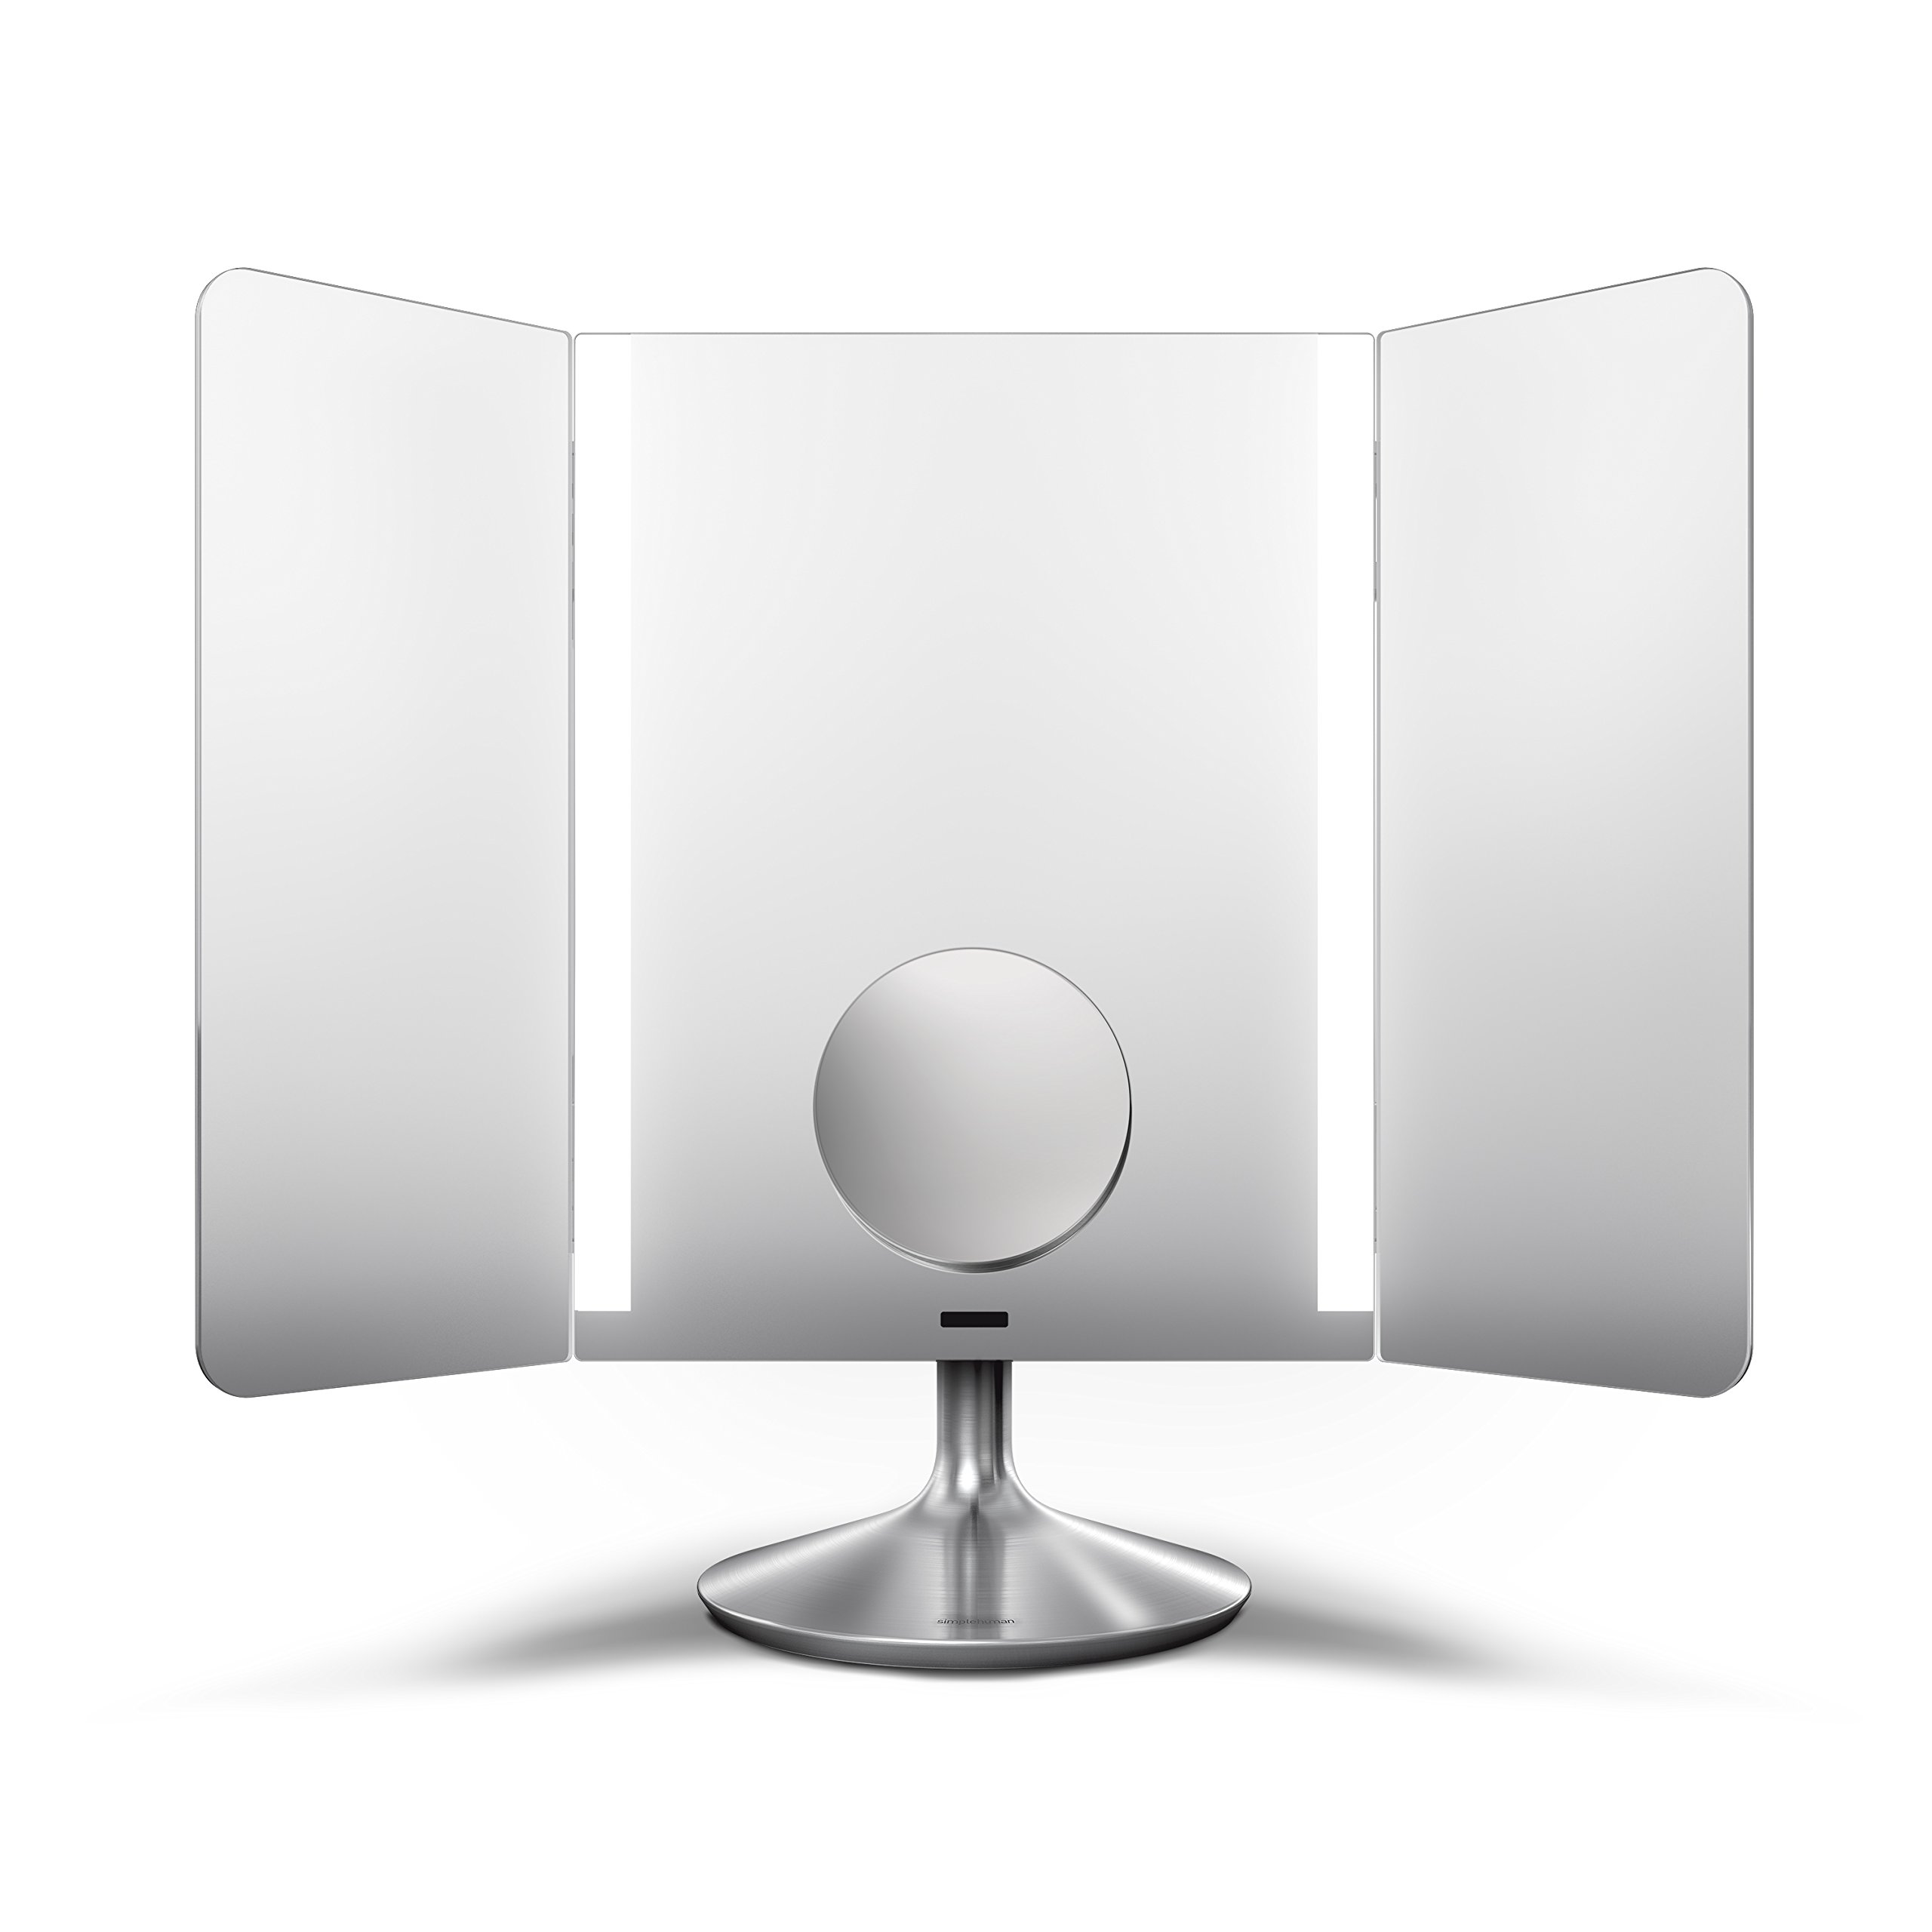 simplehuman Sensor Lighted Makeup Vanity Mirror Pro Wide View, 1x + 10x Dual Magnification, Stainless Steel, Rechargeable And Cordless by simplehuman (Image #3)